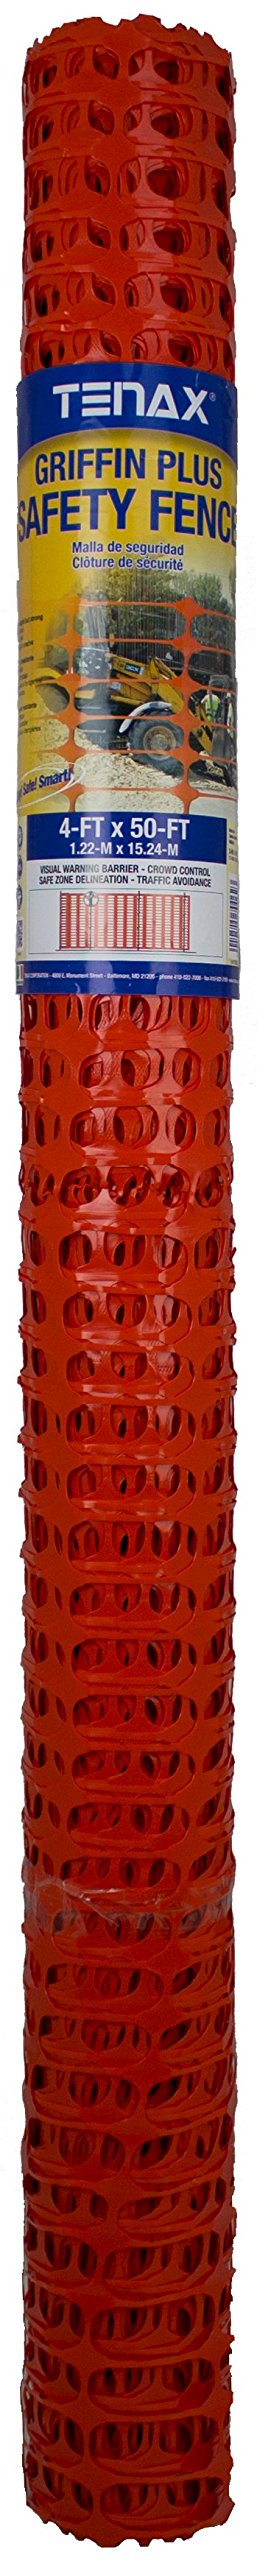 Tenax x 1A170062 Griffin Plus 4'X50' Safety Fence, Small, Orange by Tenax